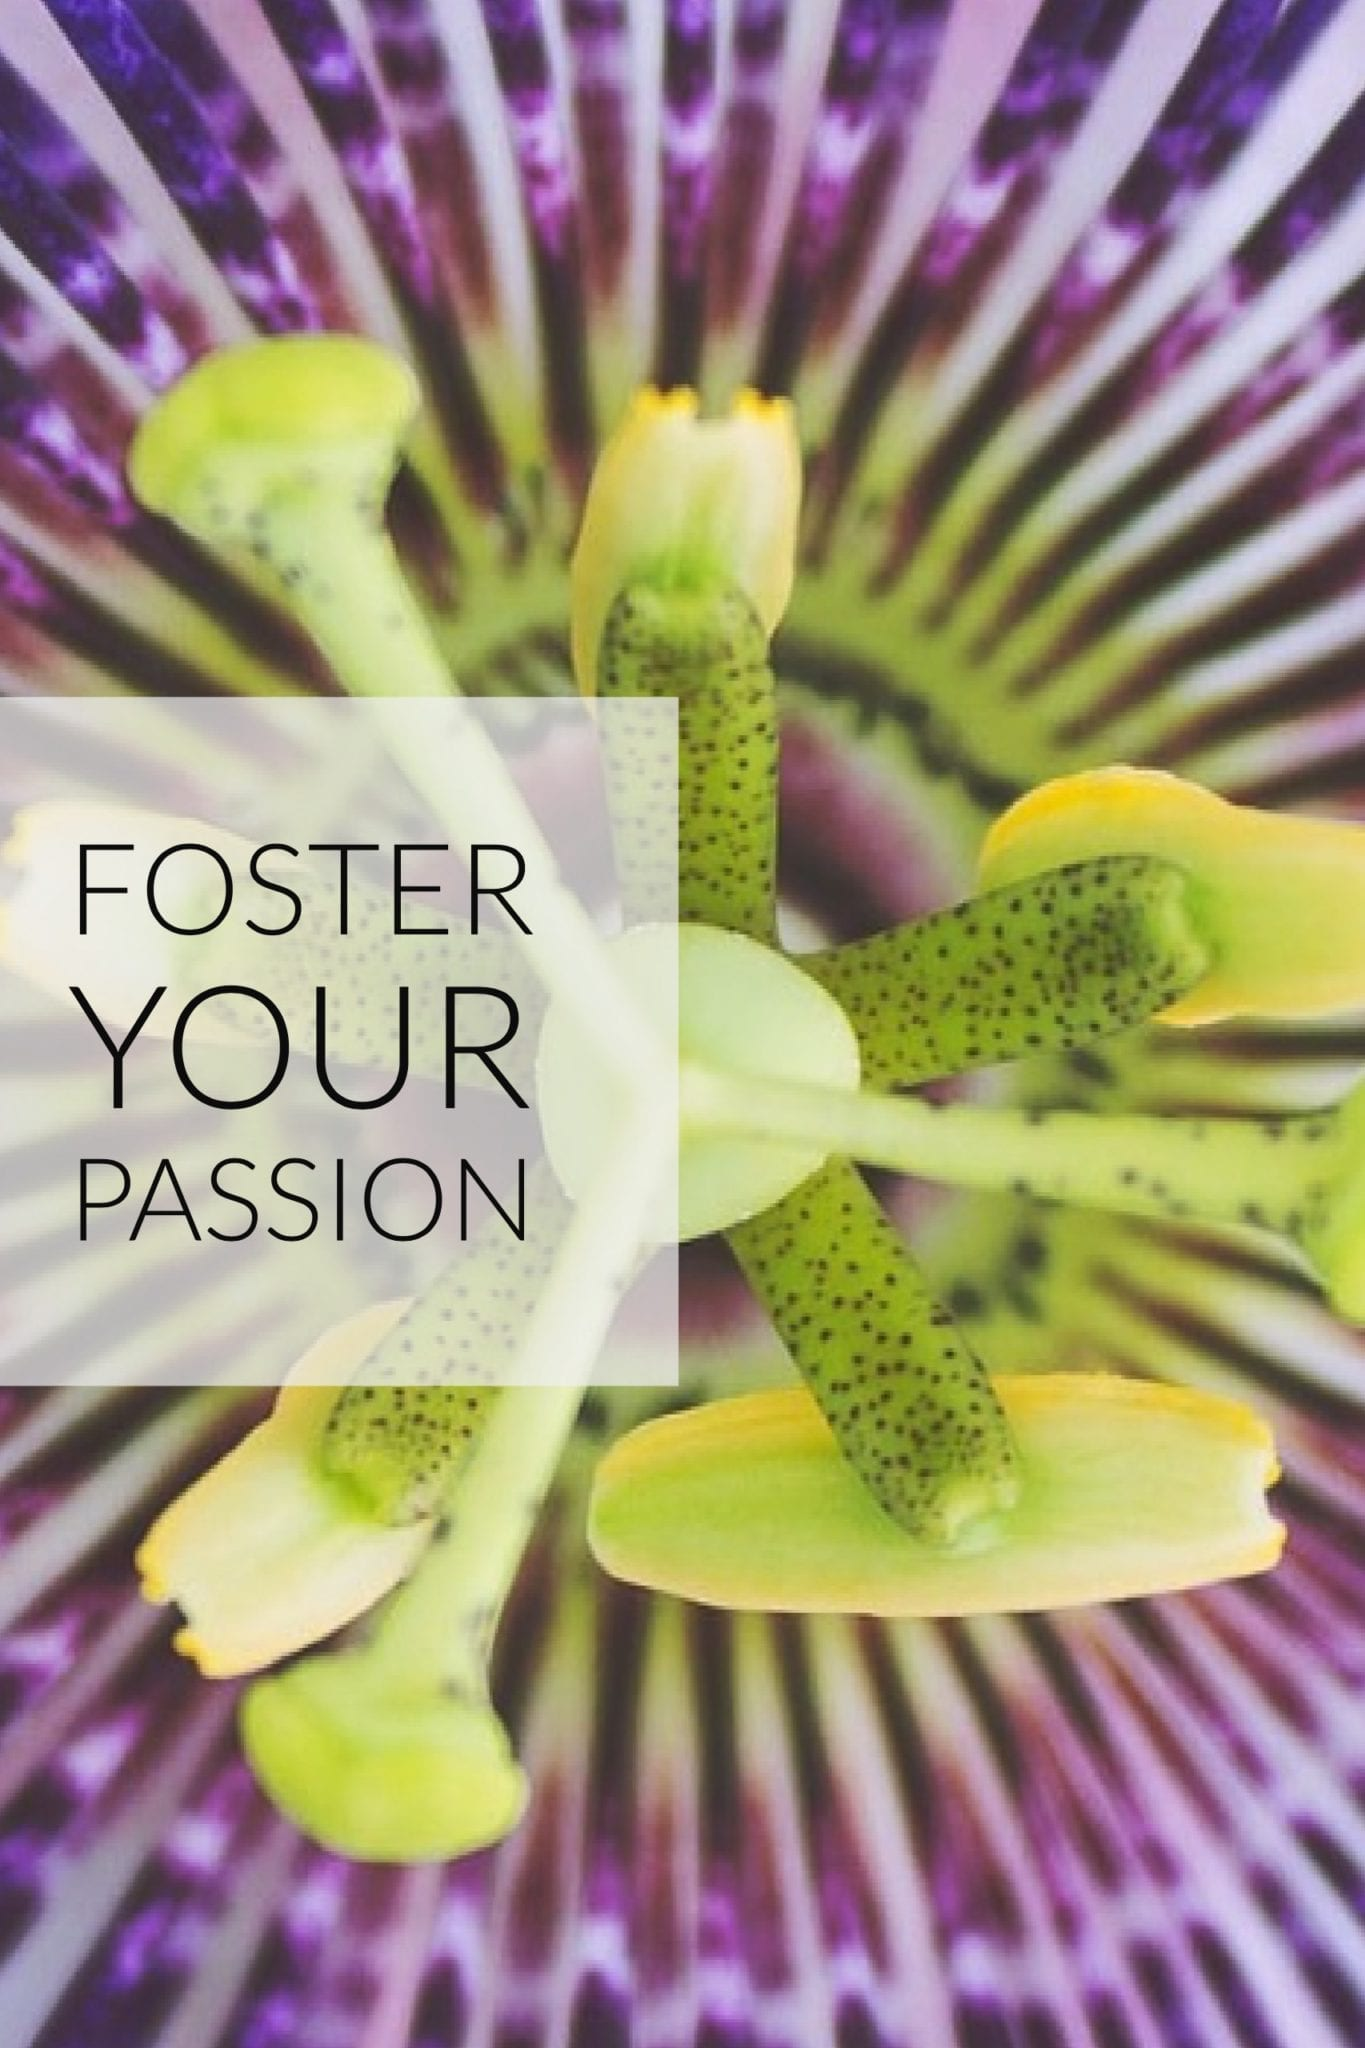 Foster your passion- Tubac School of Fine Art Blog